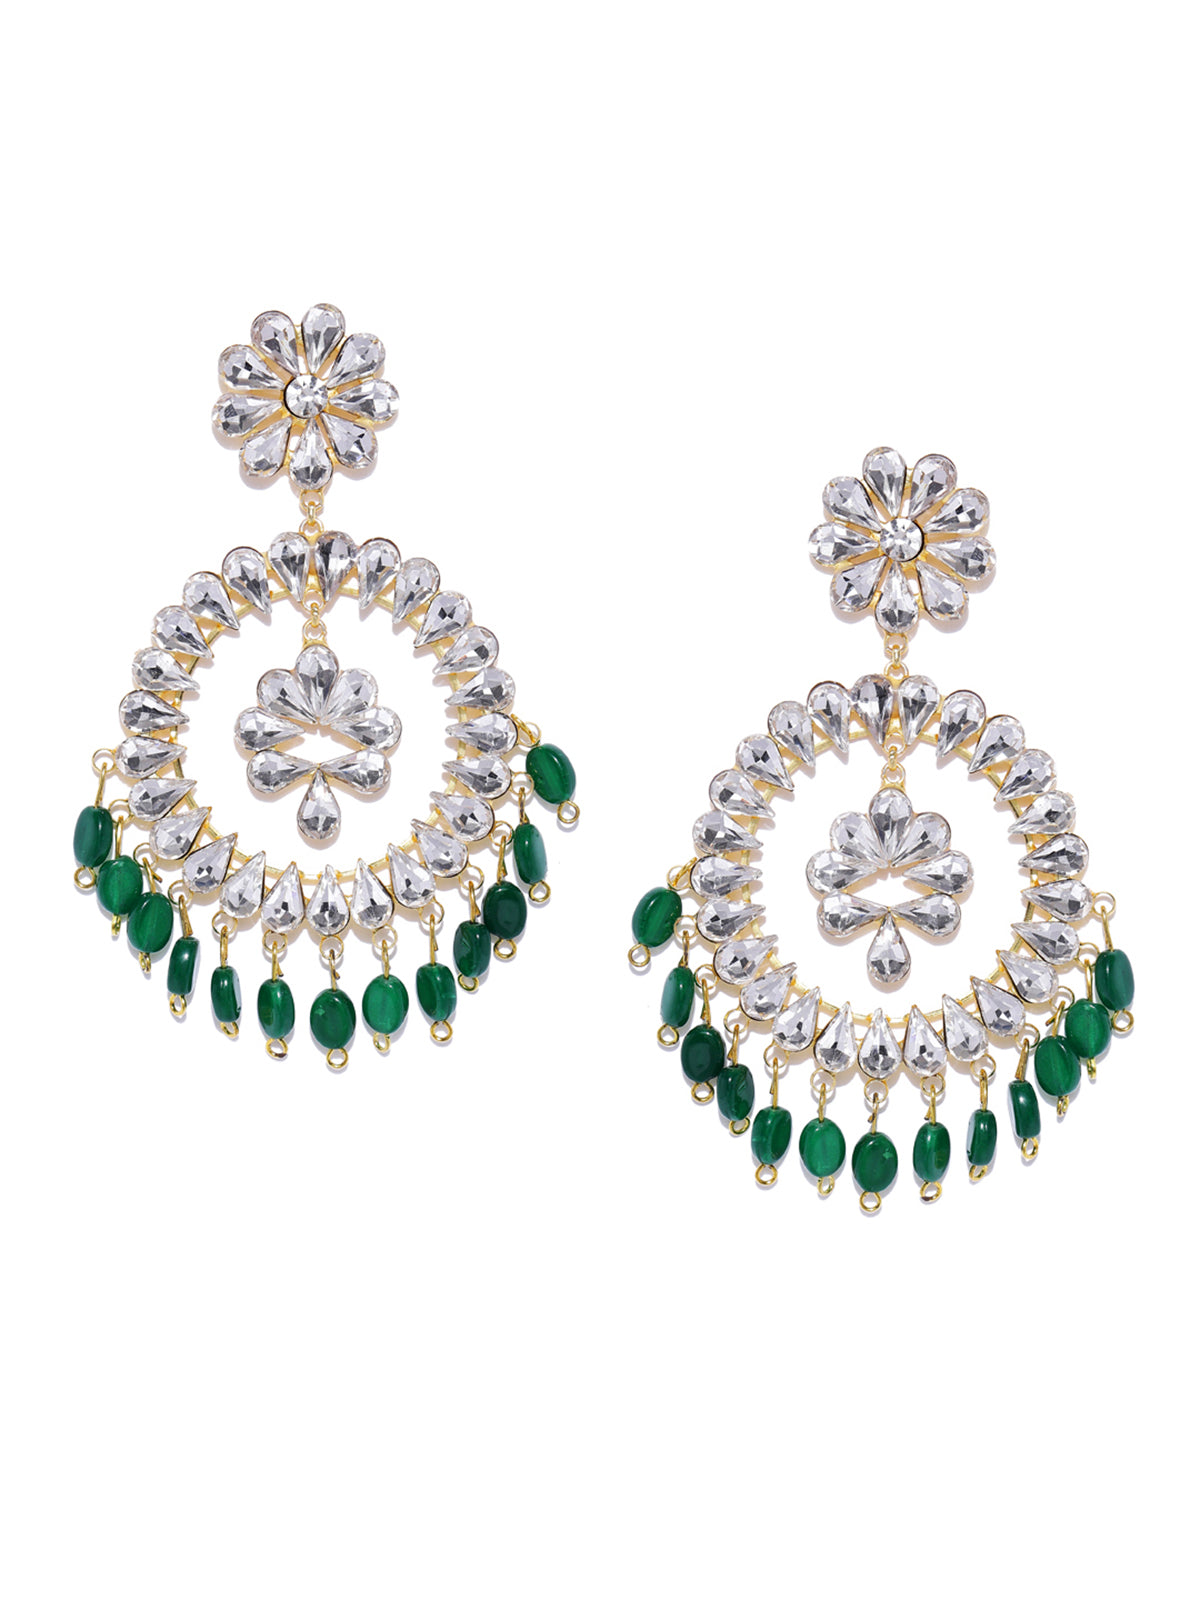 Zaveri Pearls Crystal Shine Stones And Green Beads Dangle Earring-ZAVERI PEARLS1-Earring